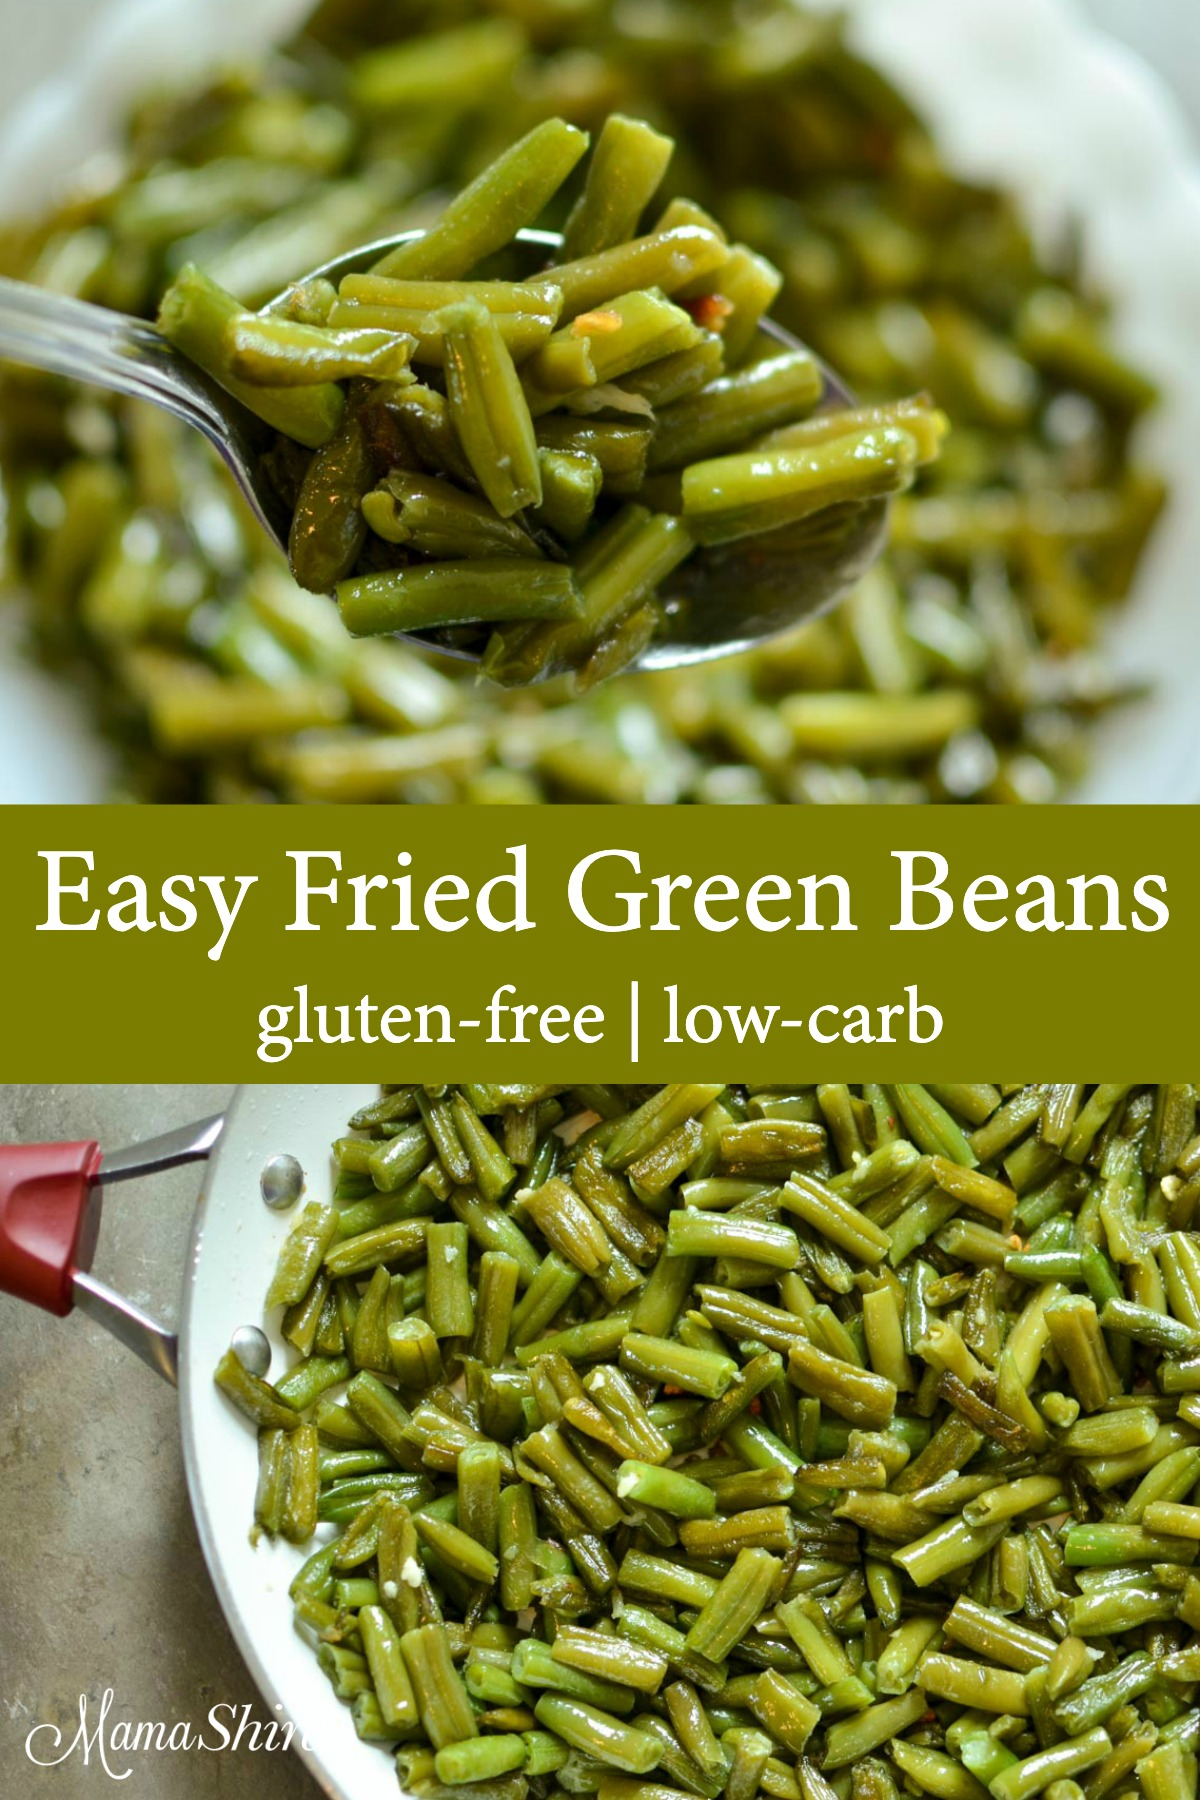 Green beans that were fried in a skillet made from an easy fried green beans recipe.